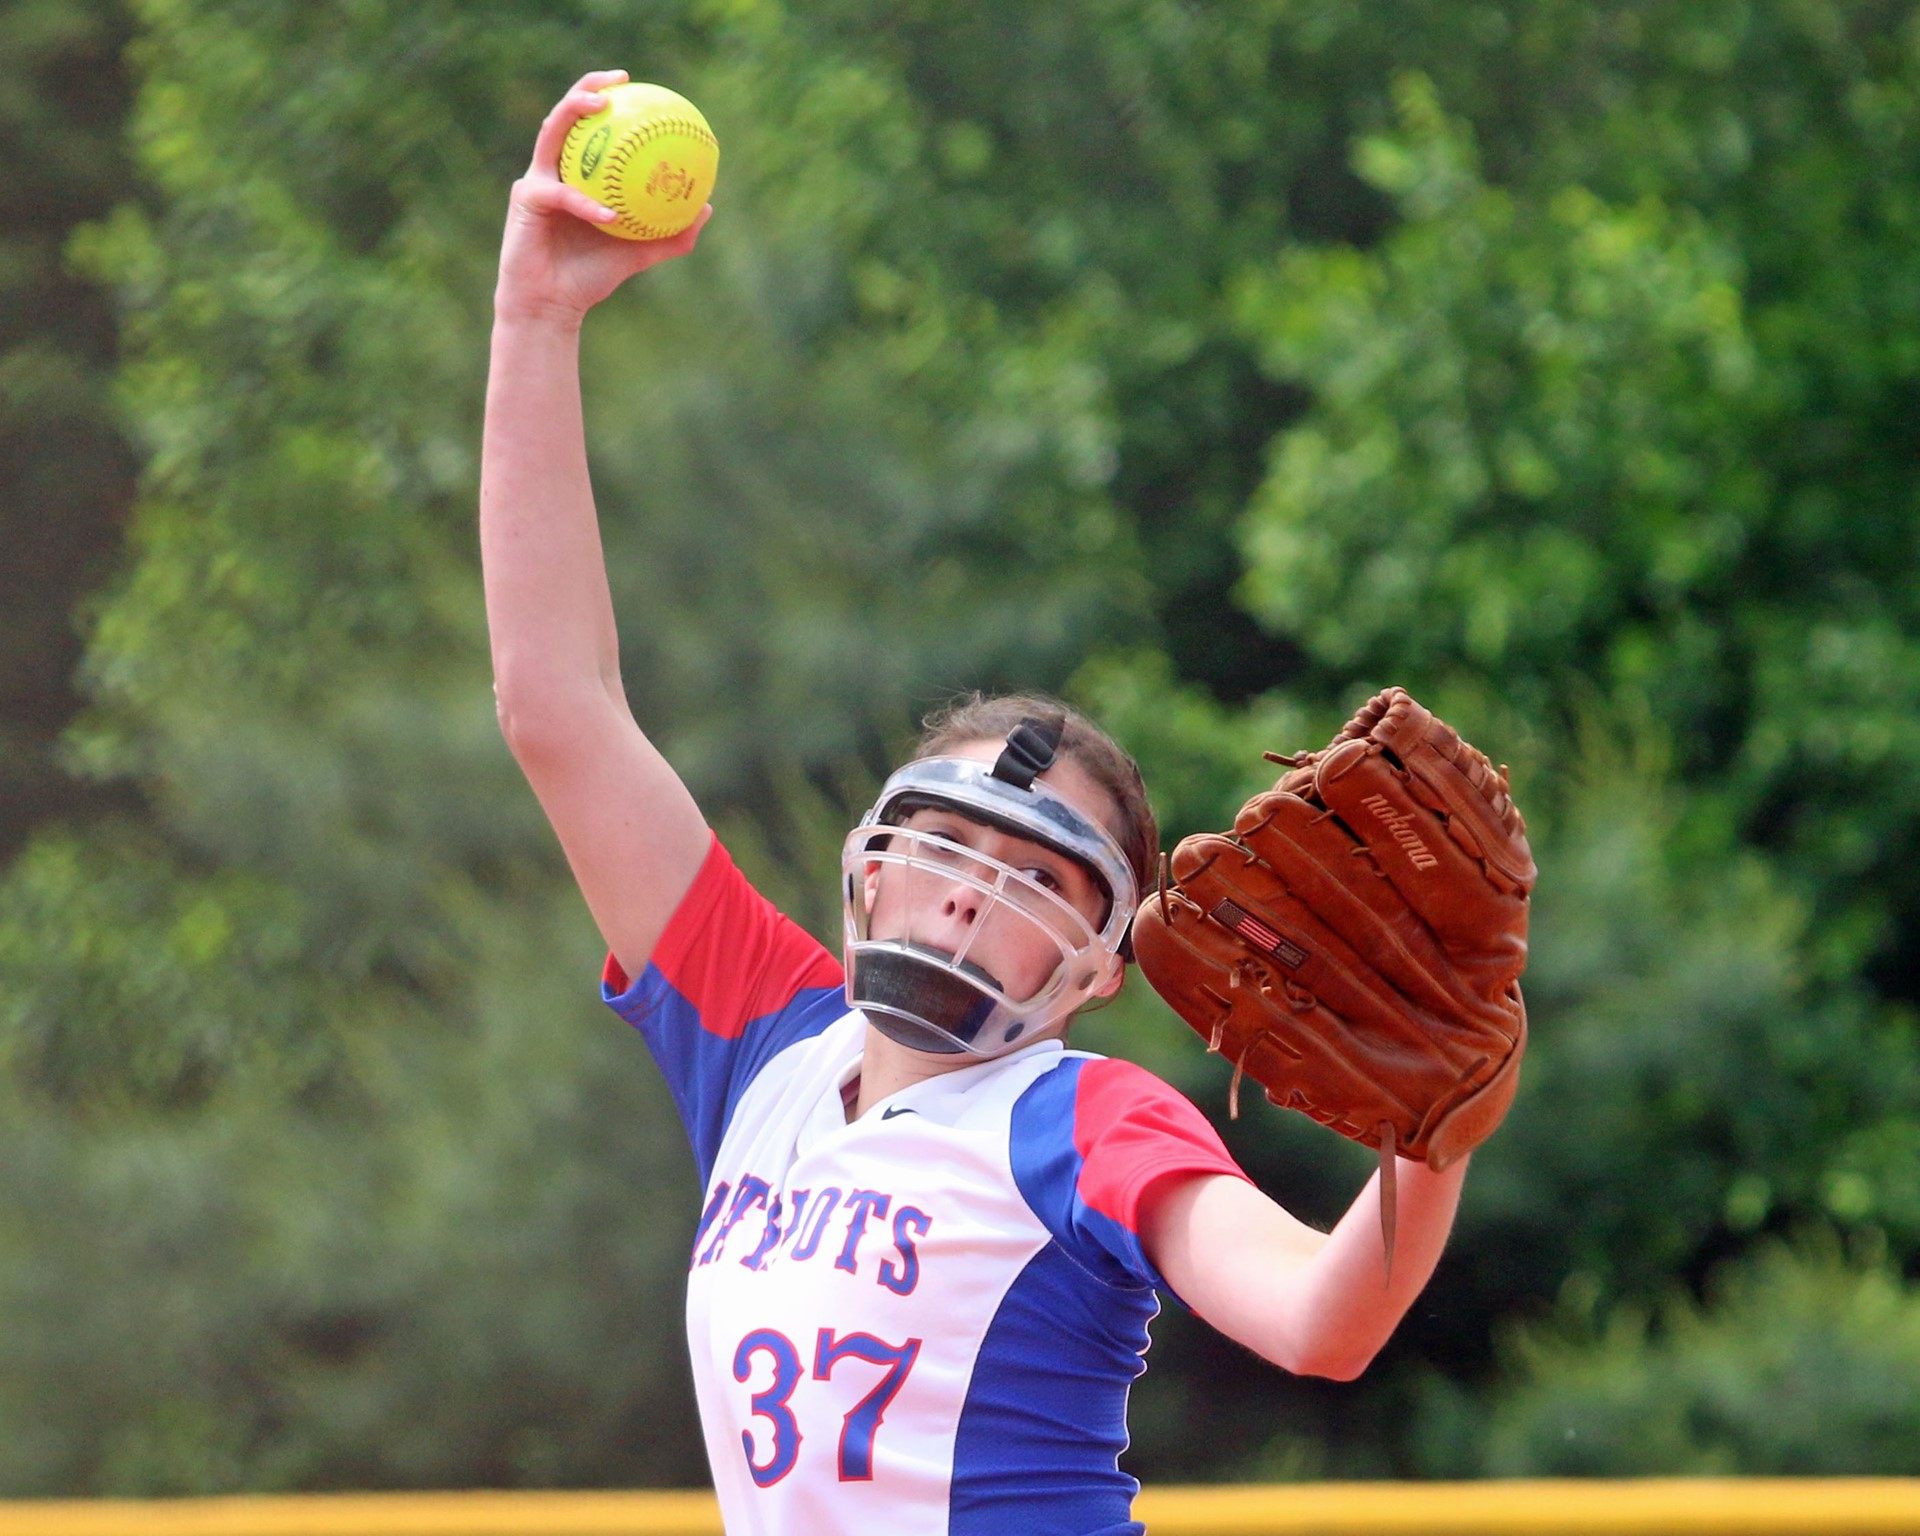 Lady Patriot Kris-Anne Pardue looking for an out.